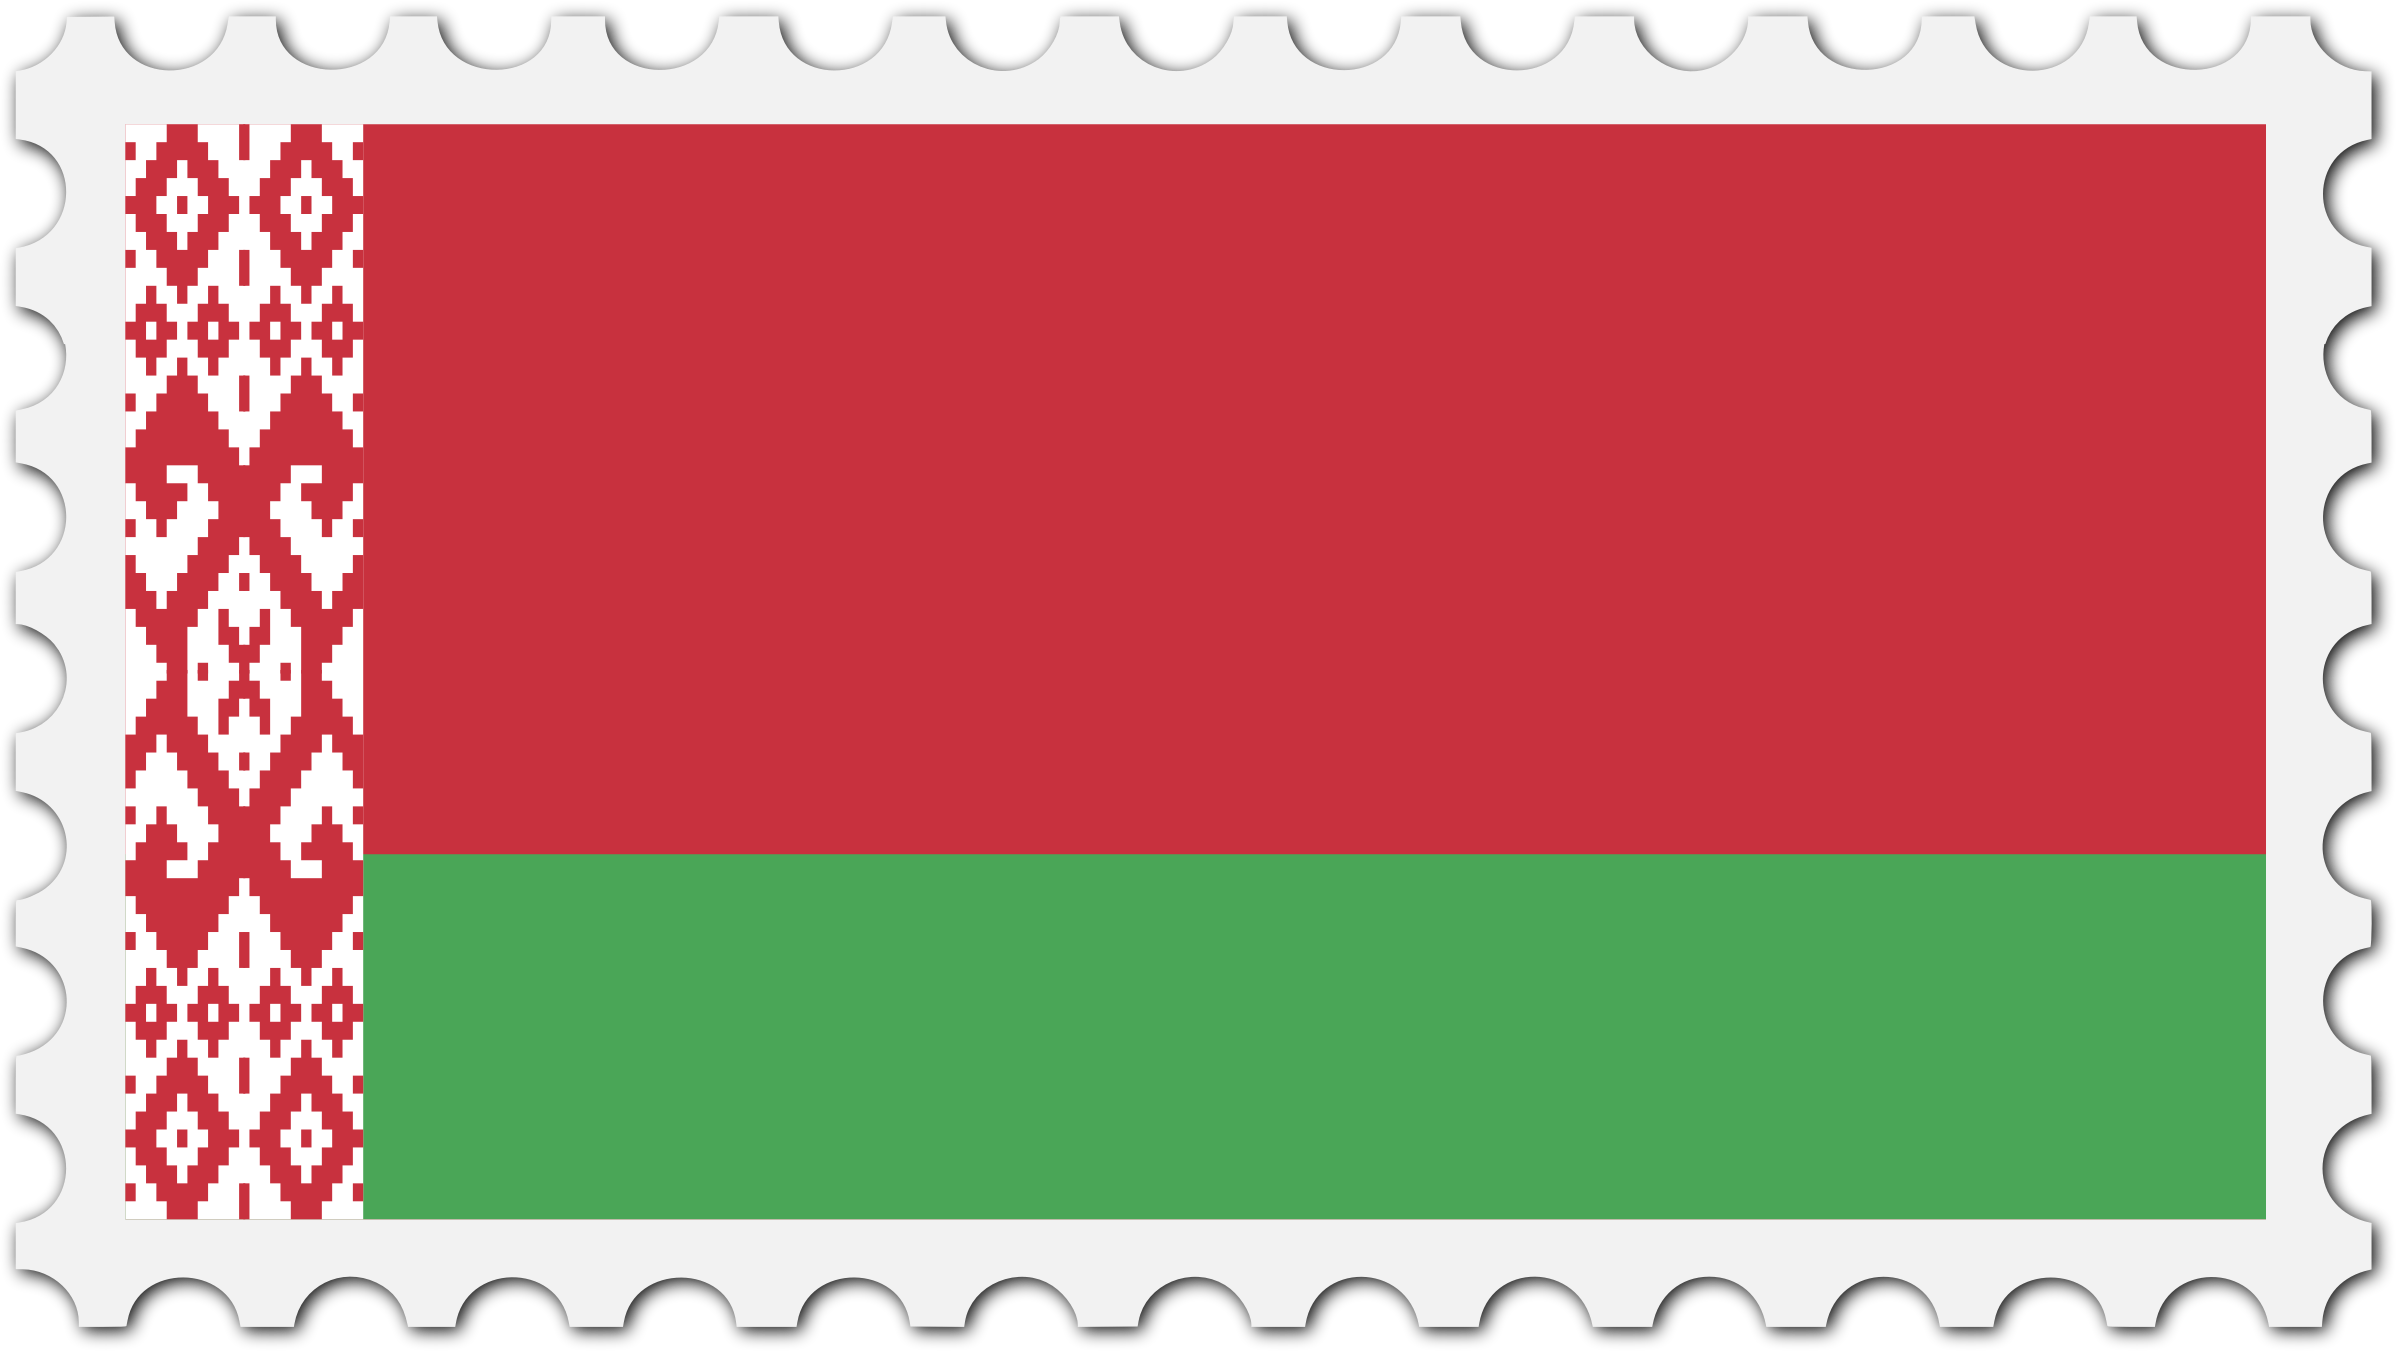 Belarus flag stamp by Firkin